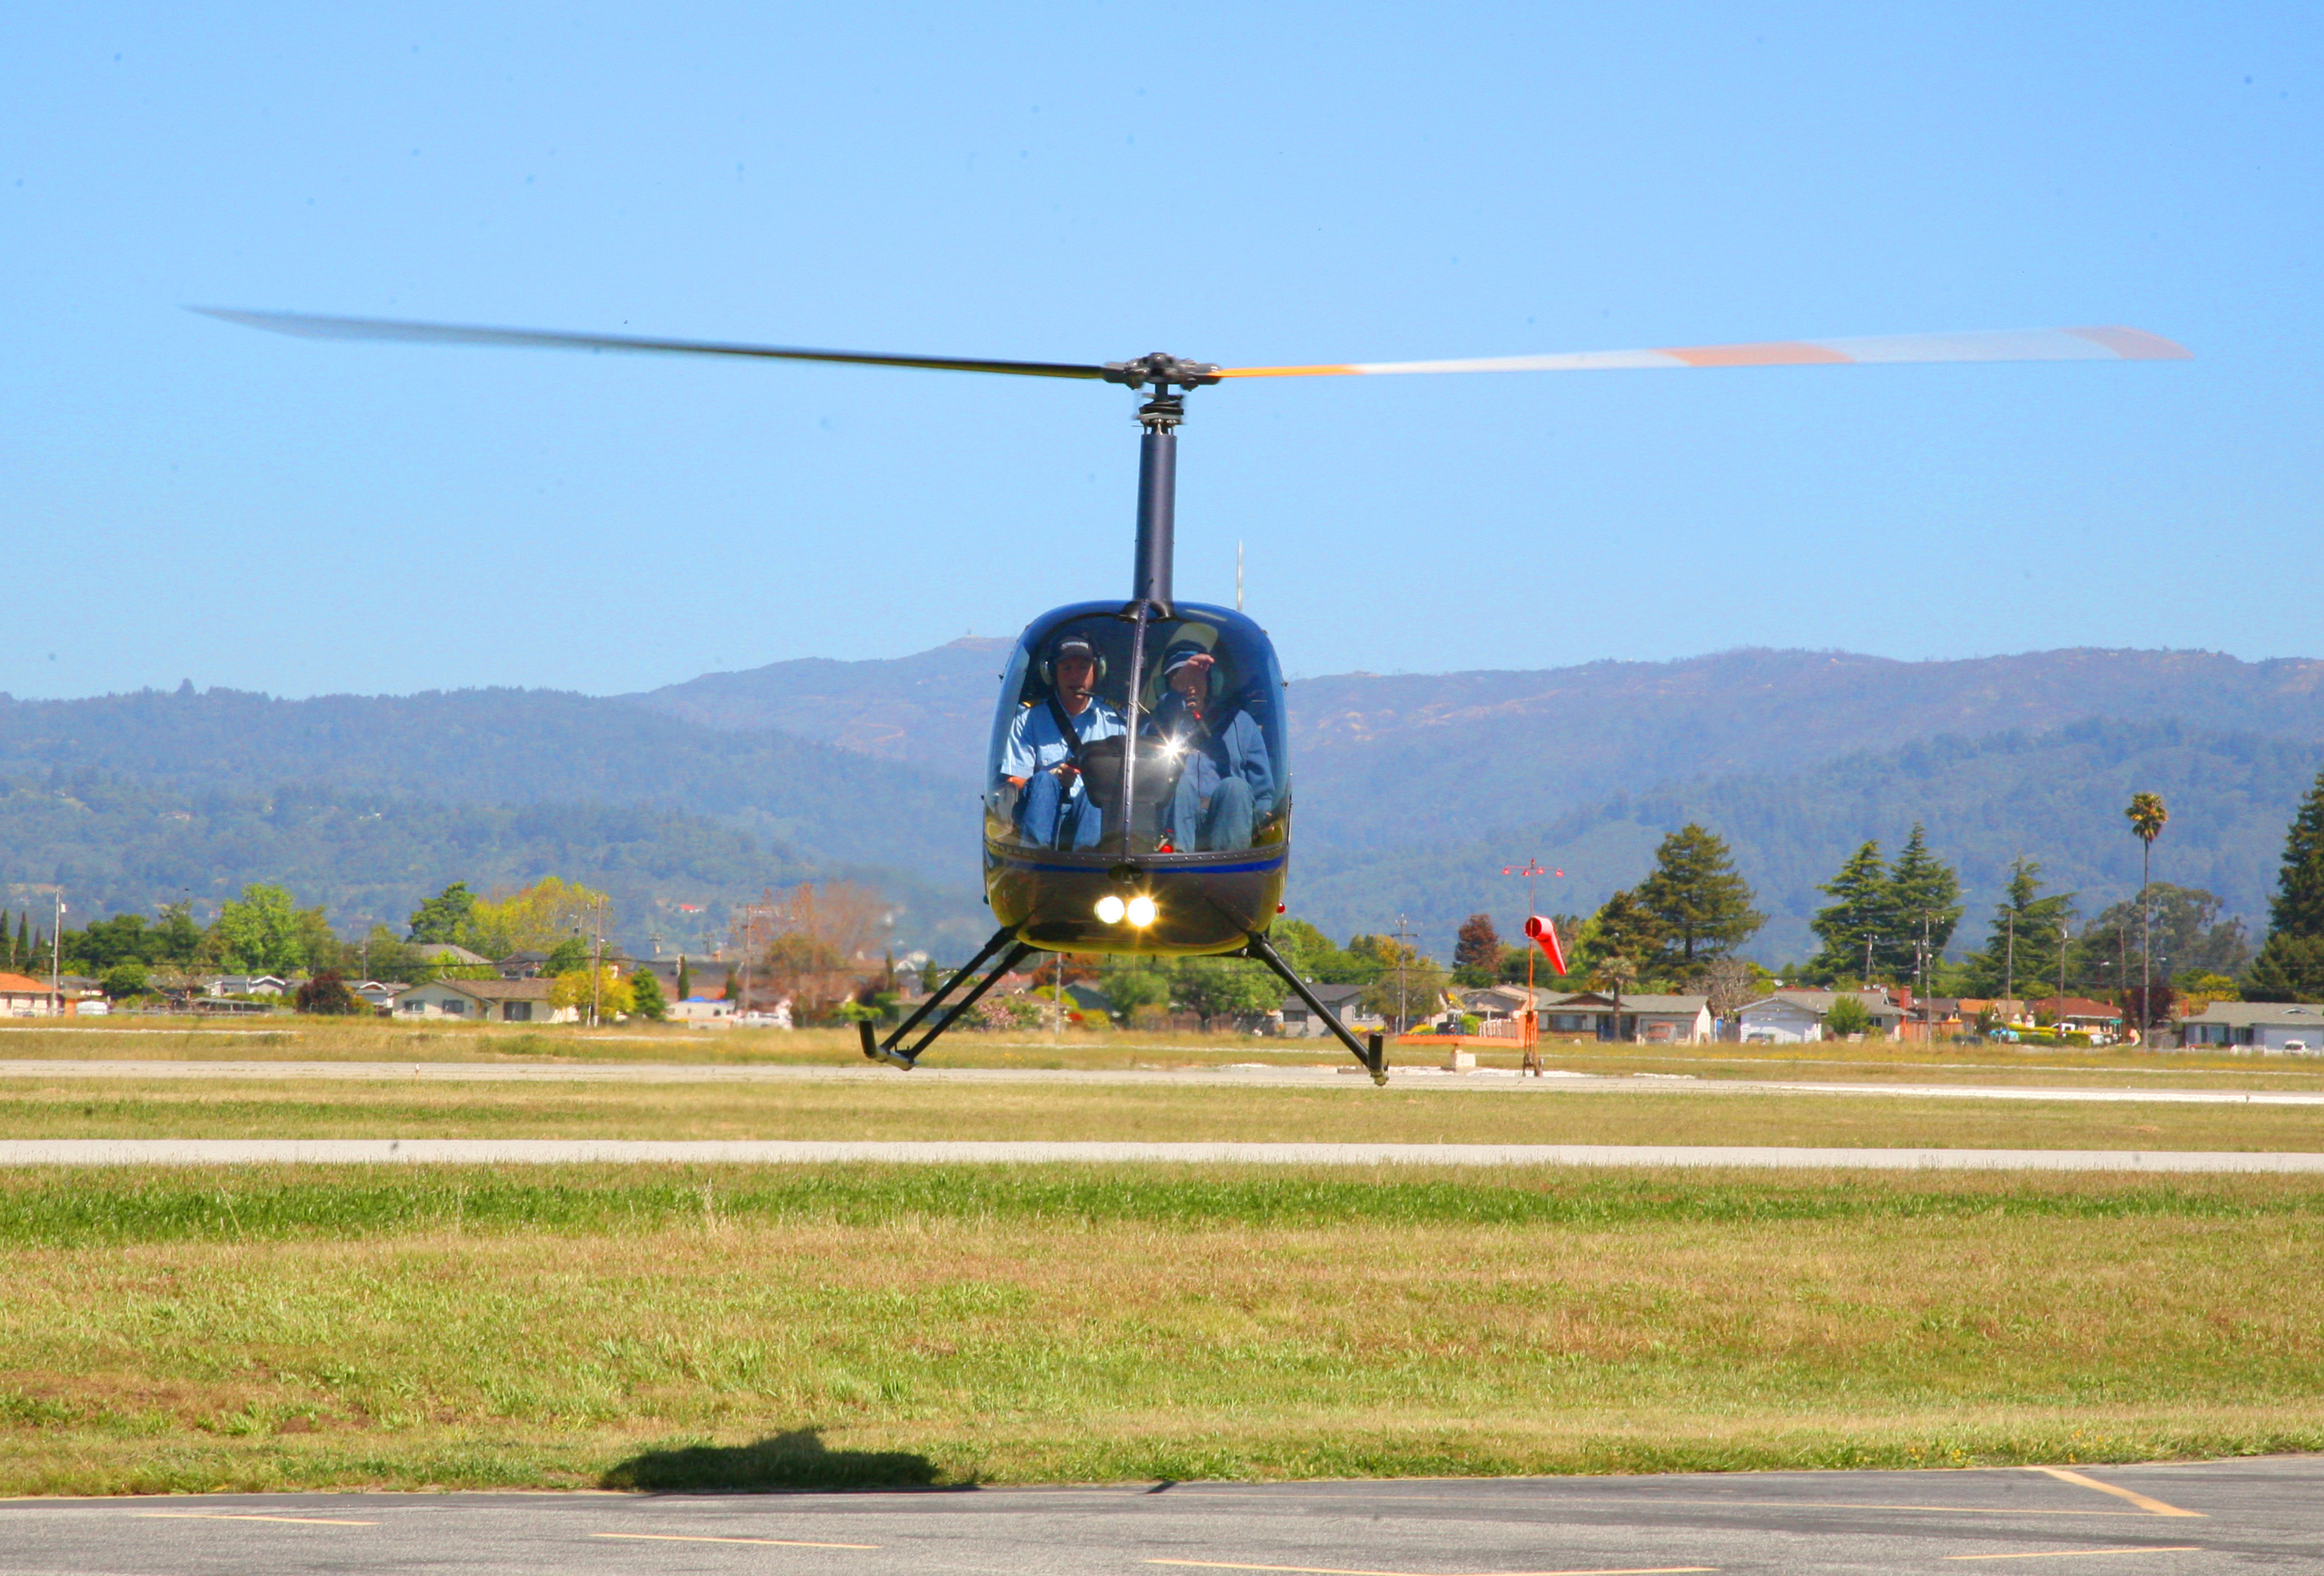 Cars For Sale Used Cars For Sale Used Cars >> File:Robinson R22 Helicopter hovering.jpg - Wikimedia Commons